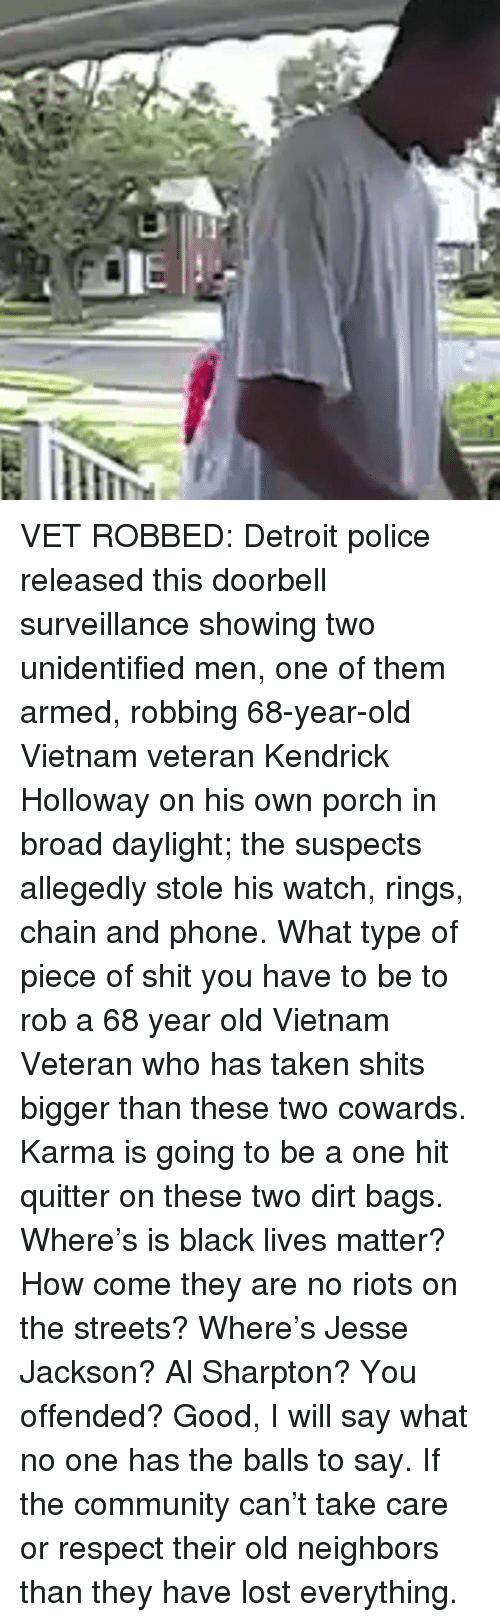 Al Sharpton, Black Lives Matter, and Community: VET ROBBED: Detroit police released this doorbell surveillance showing two unidentified men, one of them armed, robbing 68-year-old Vietnam veteran Kendrick Holloway on his own porch in broad daylight; the suspects allegedly stole his watch, rings, chain and phone. What type of piece of shit you have to be to rob a 68 year old Vietnam Veteran who has taken shits bigger than these two cowards. Karma is going to be a one hit quitter on these two dirt bags. Where's is black lives matter? How come they are no riots on the streets? Where's Jesse Jackson? Al Sharpton? You offended? Good, I will say what no one has the balls to say. If the community can't take care or respect their old neighbors than they have lost everything.